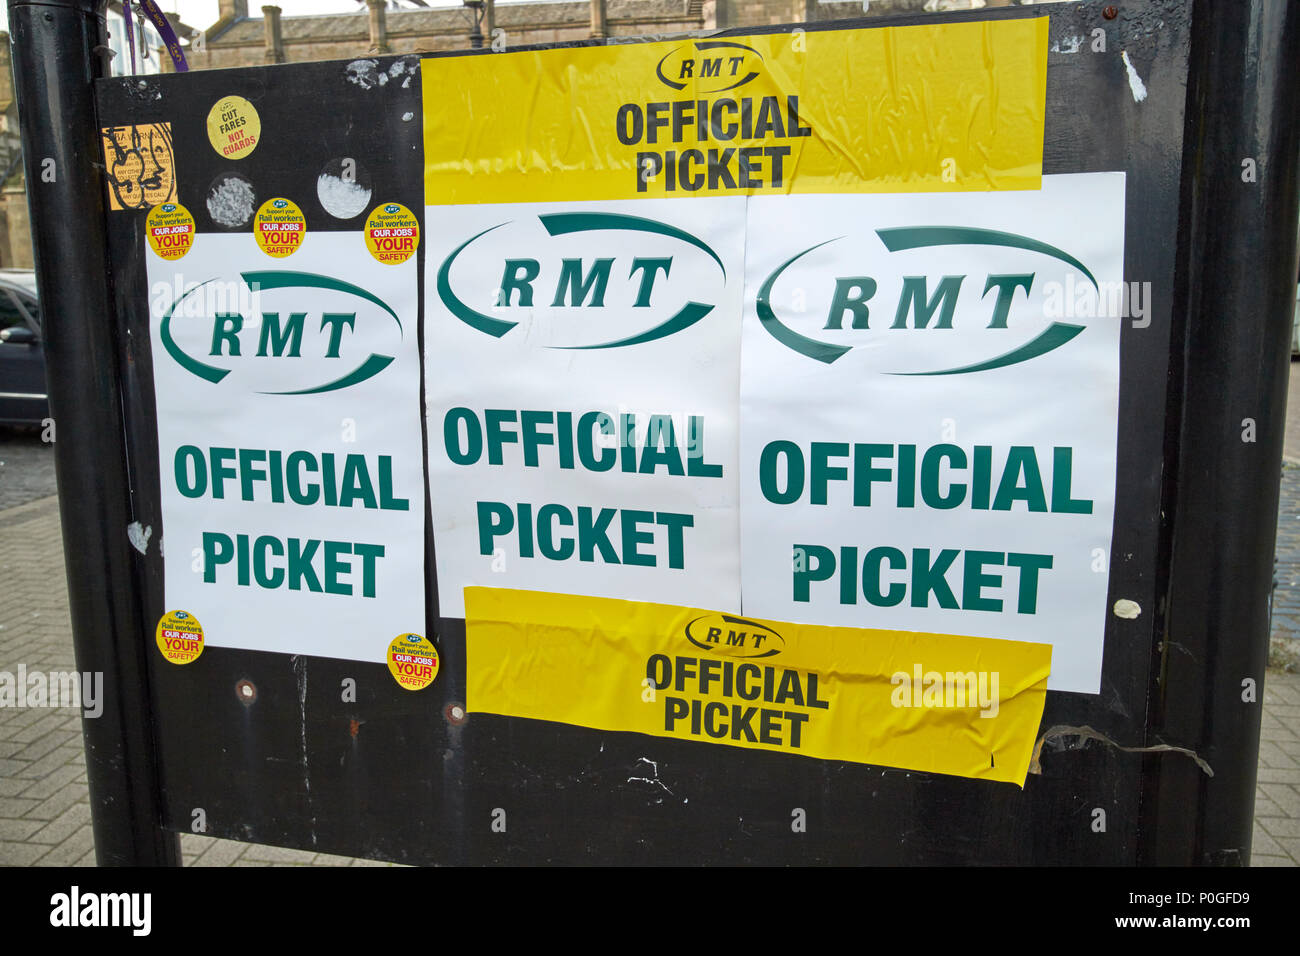 RMT union official picket signs outside Carlisle train station Cumbria England UK - Stock Image